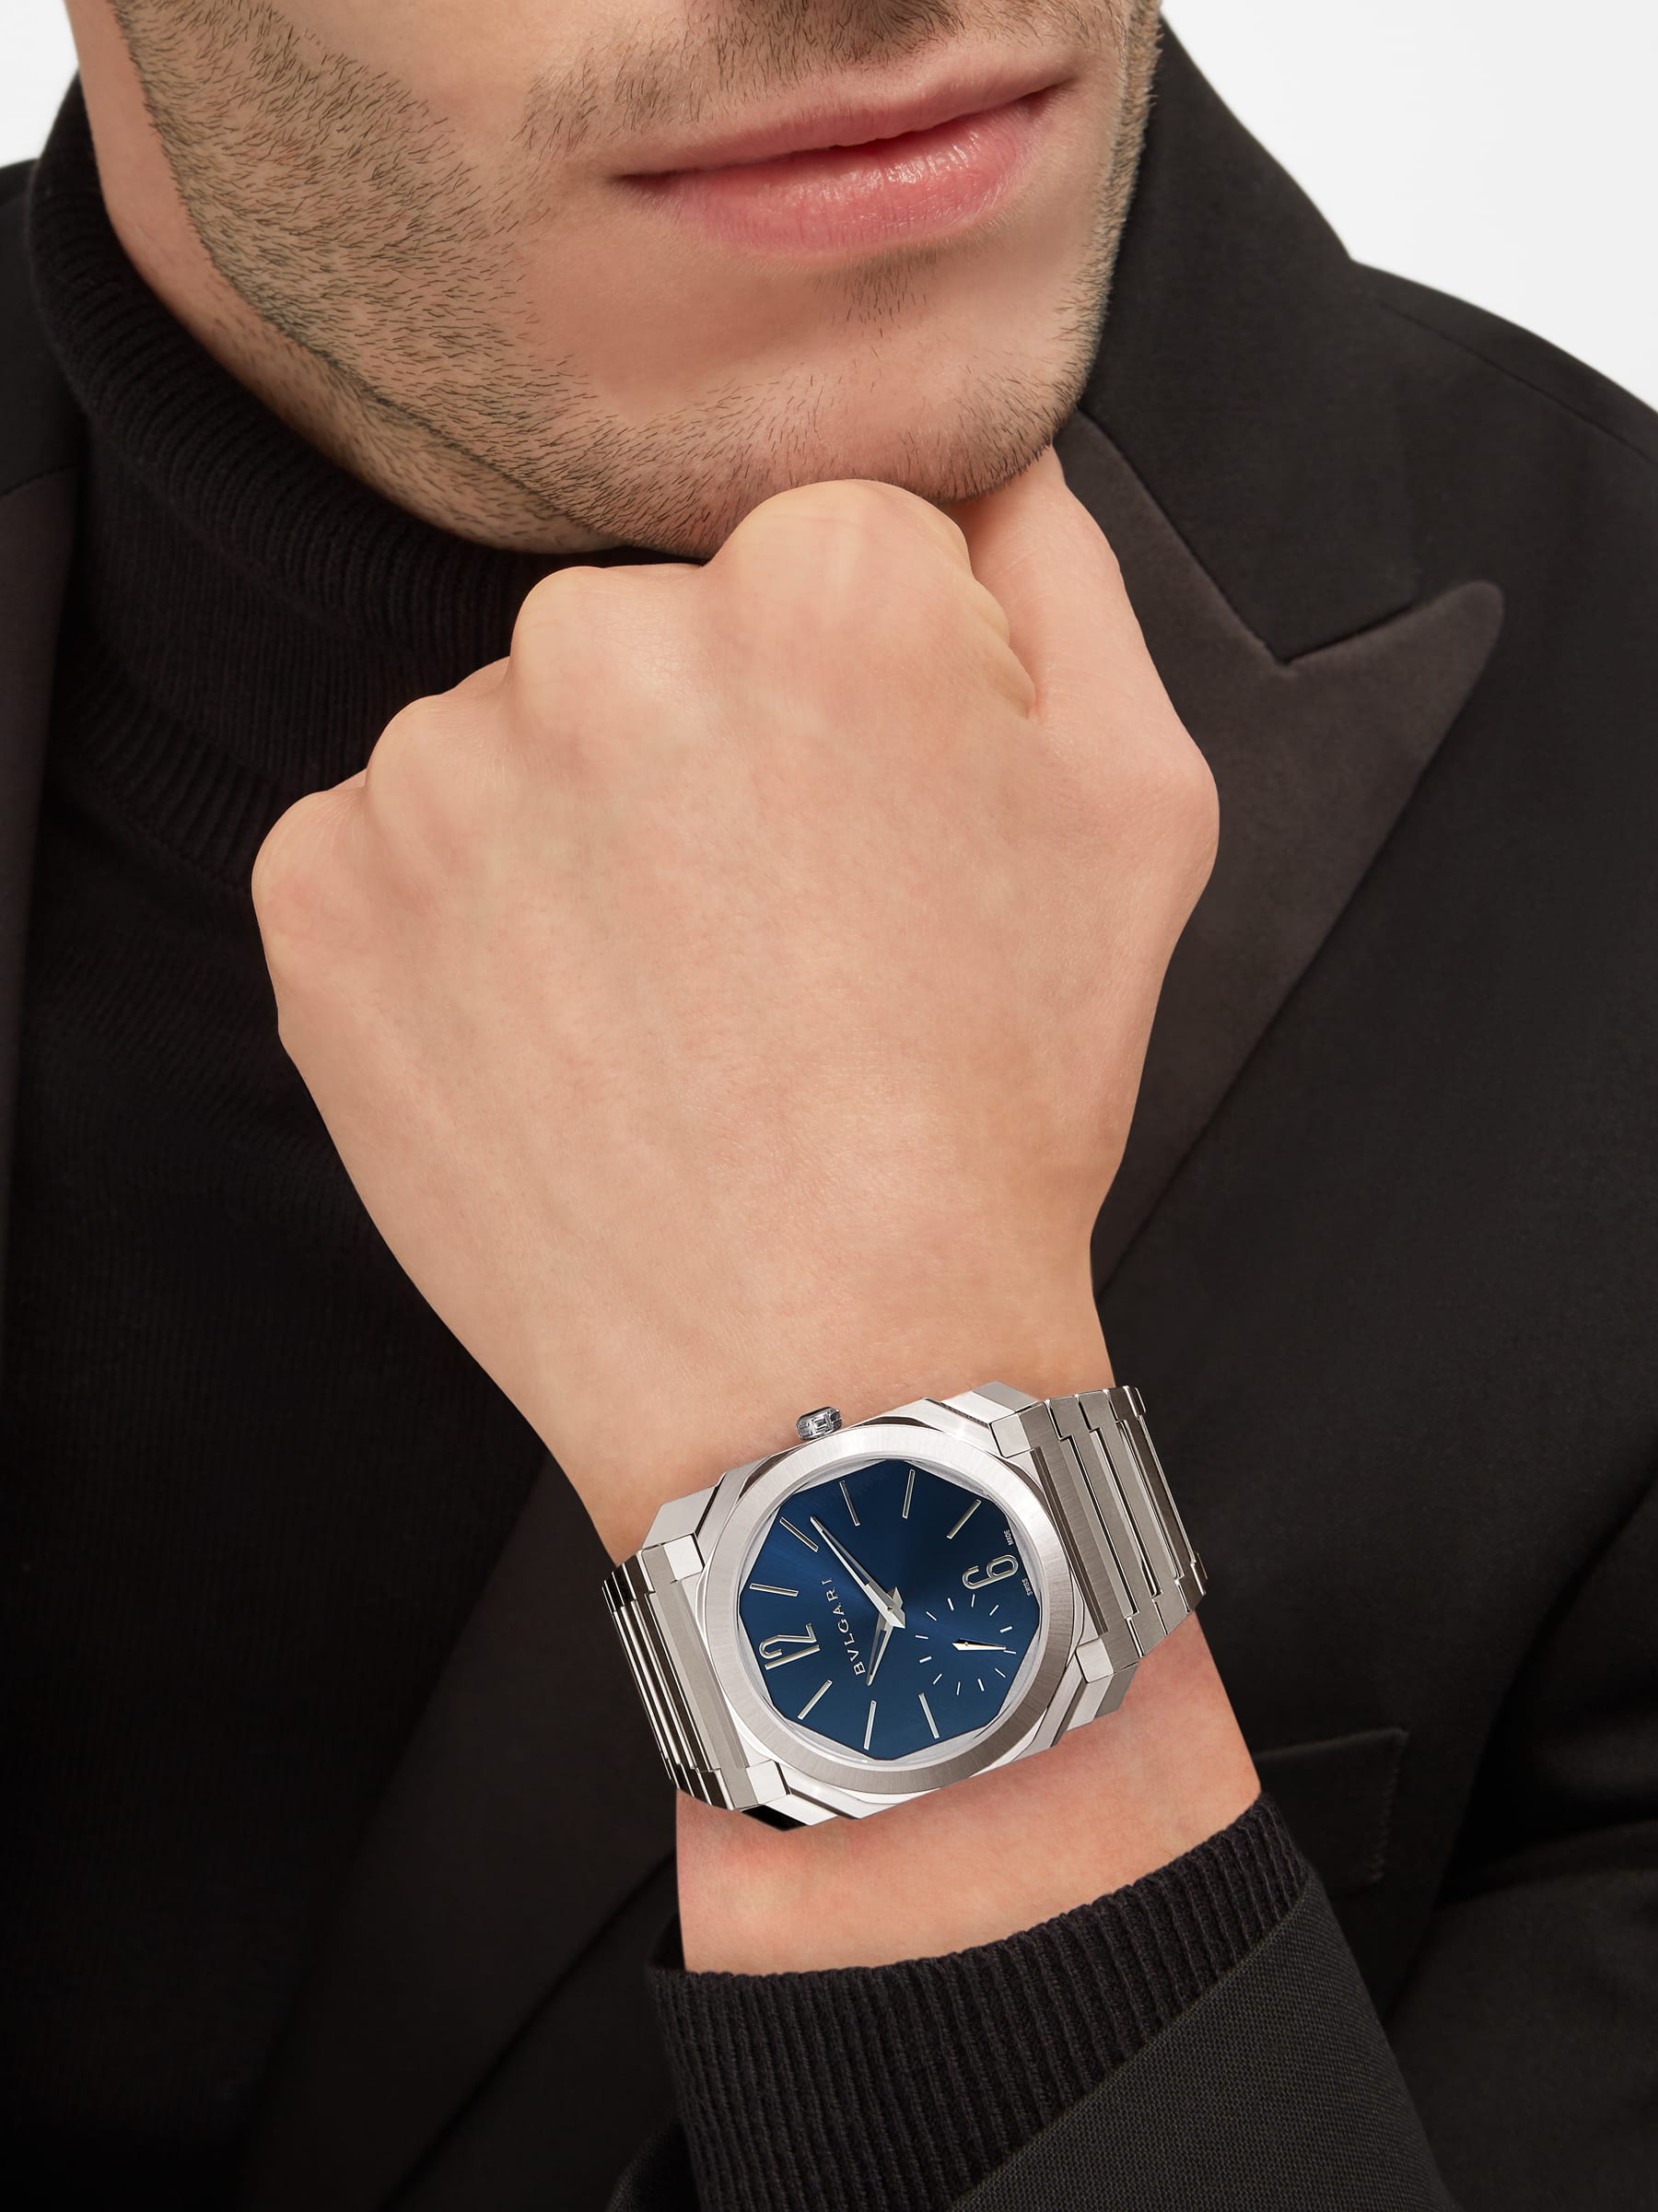 Octo Finissimo Automatic watch with mechanical manufacture movement, automatic winding, platinum micro rotor, small seconds, extra-thin satin-polished stainless steel case and integrated bracelet, transparent case back and blue lacquered dial with sunburst finishing. Water-resistant up to 100 meters. 103431 image 5